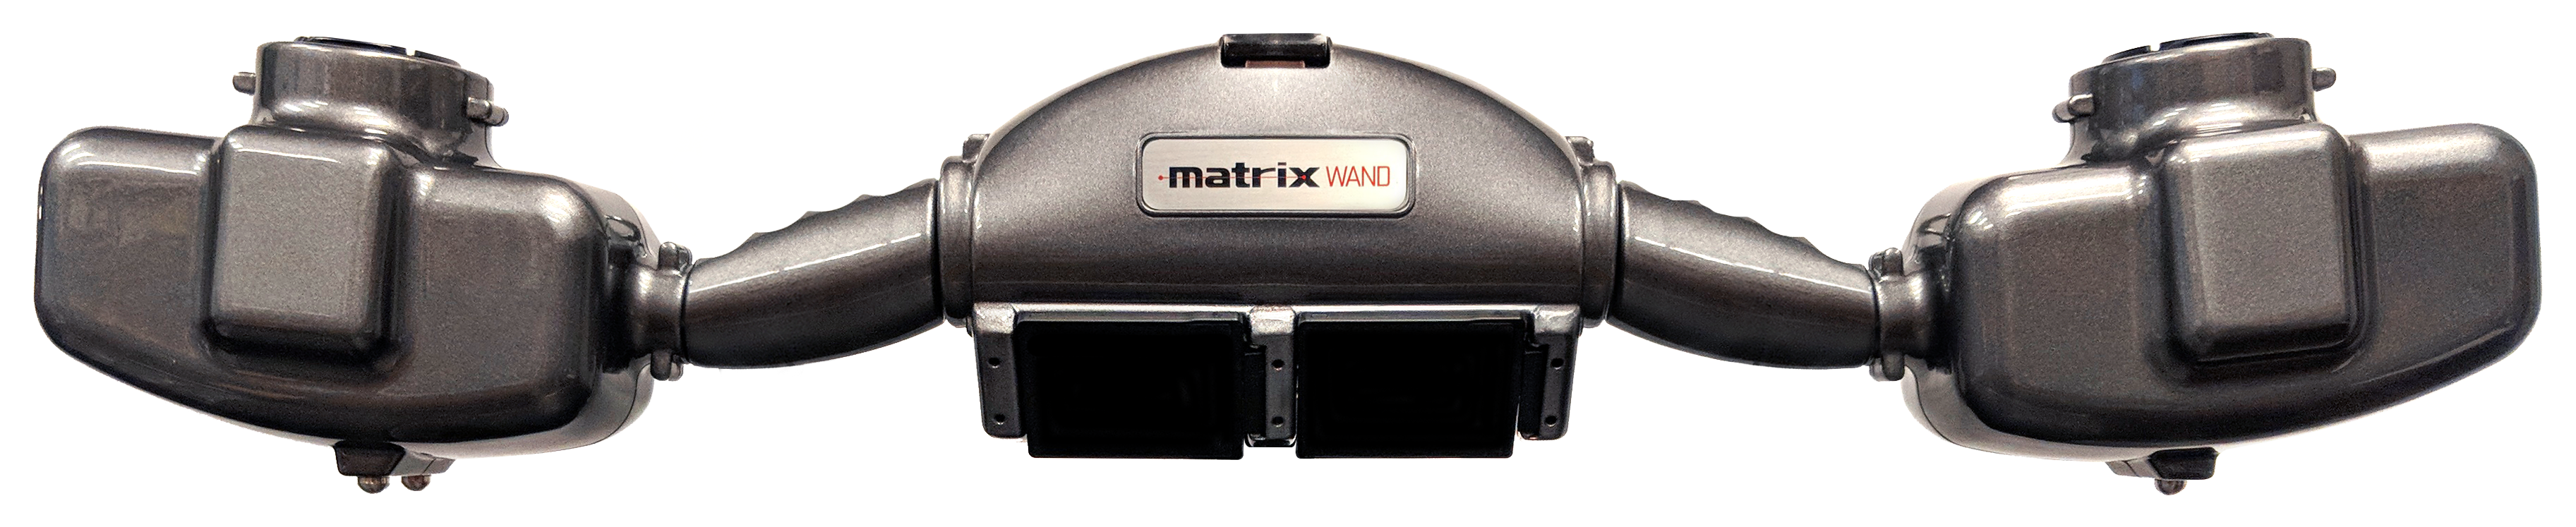 Matrix wand